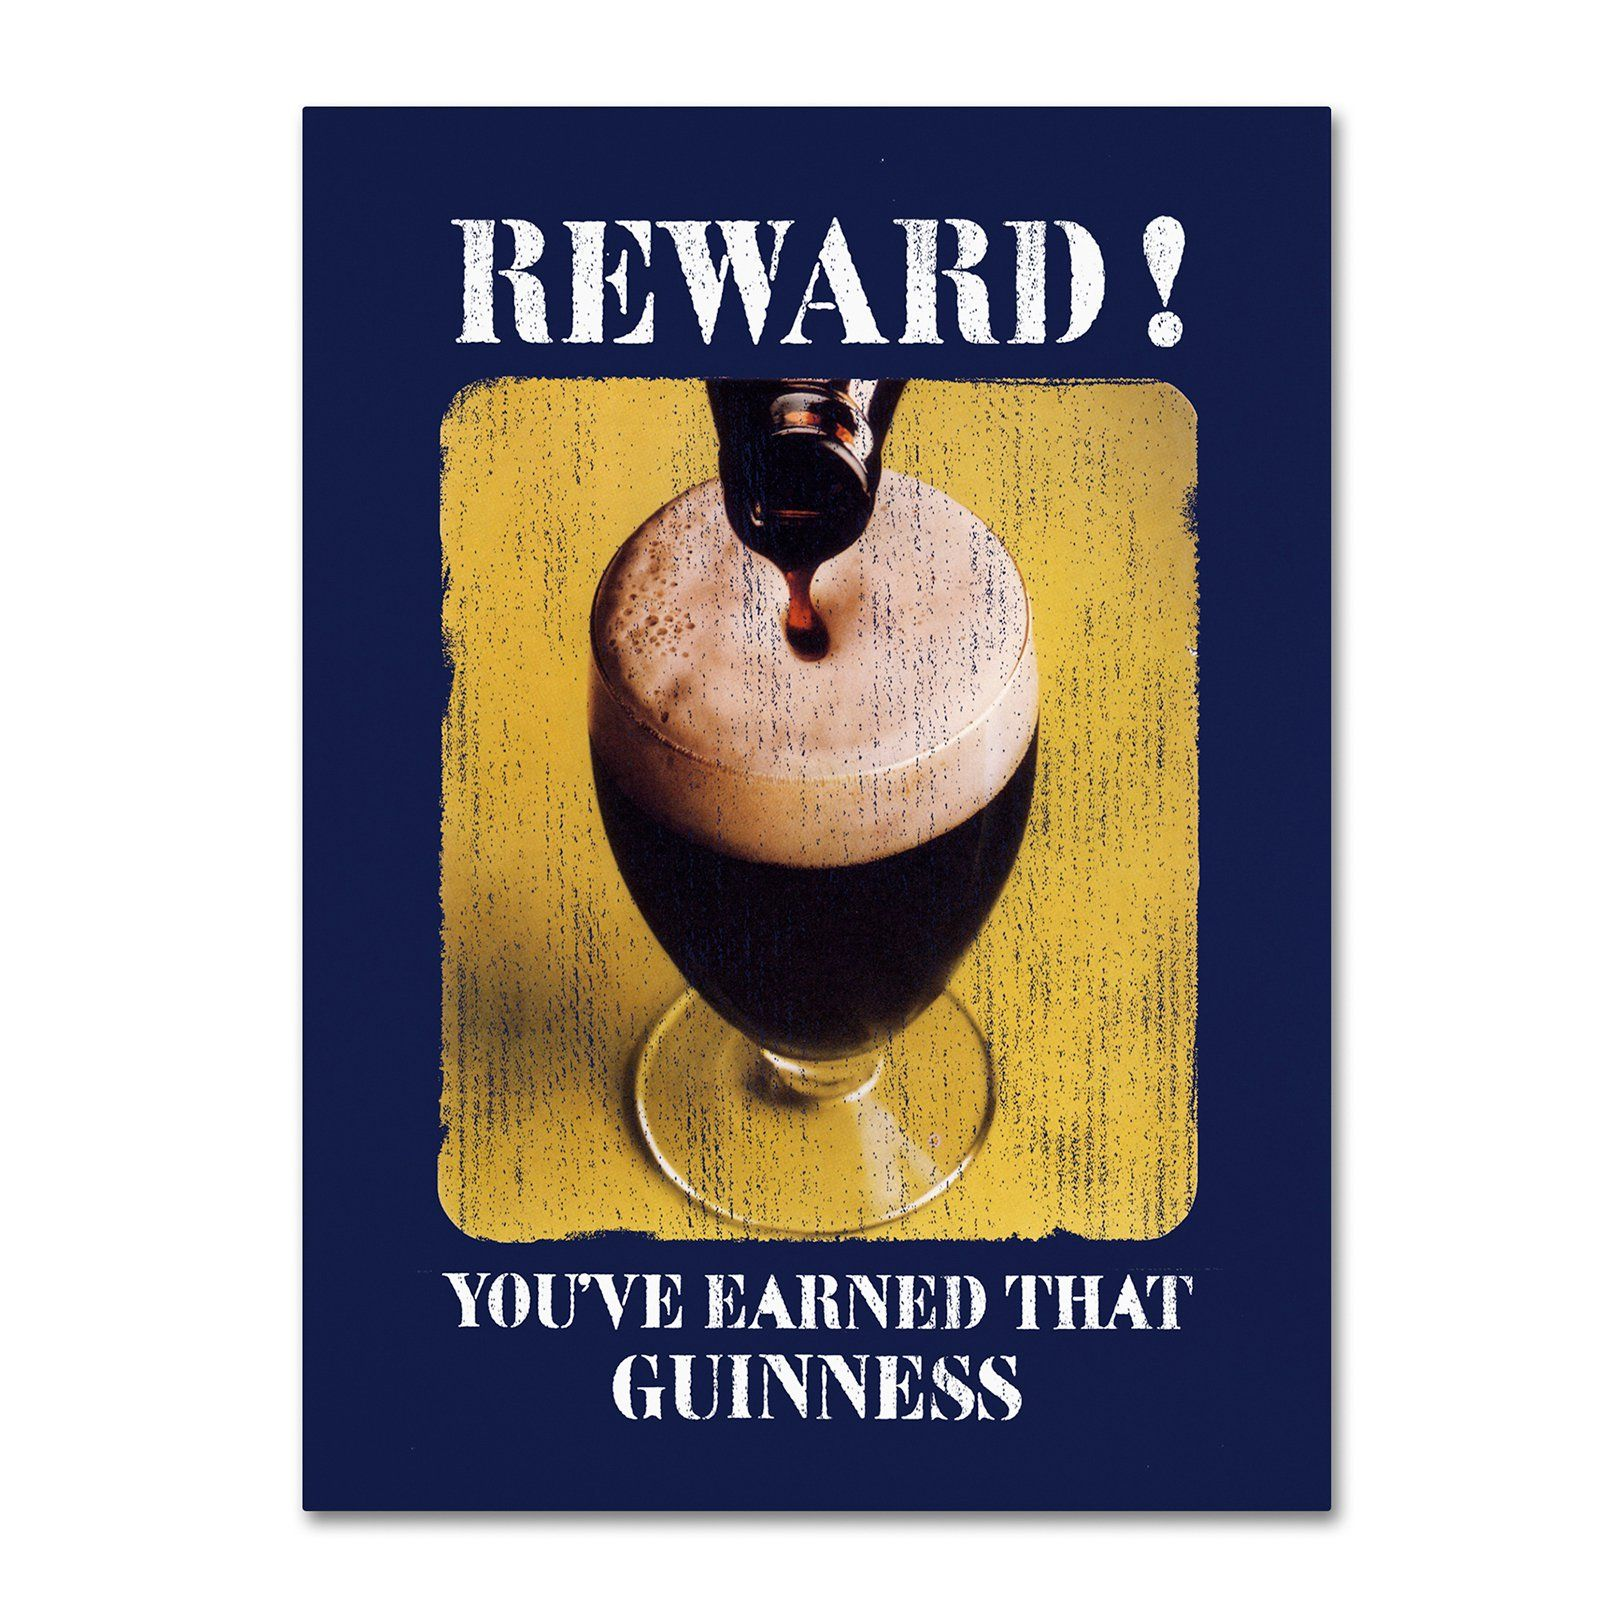 Guinness Brewery Reward Canvas Art - GN0006-C1419GG | Products ...